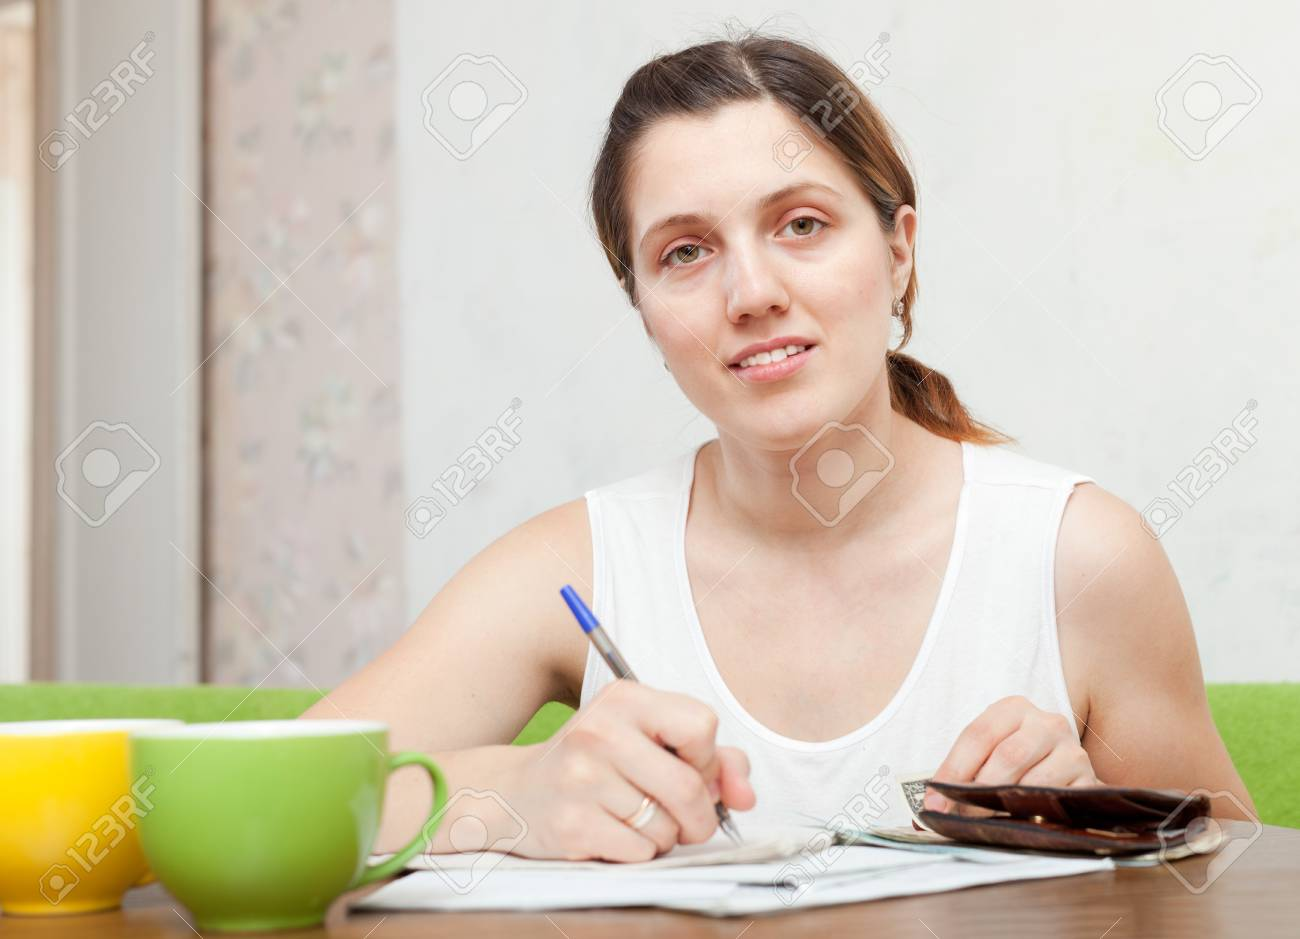 woman fills in documents at home Stock Photo - 16826564